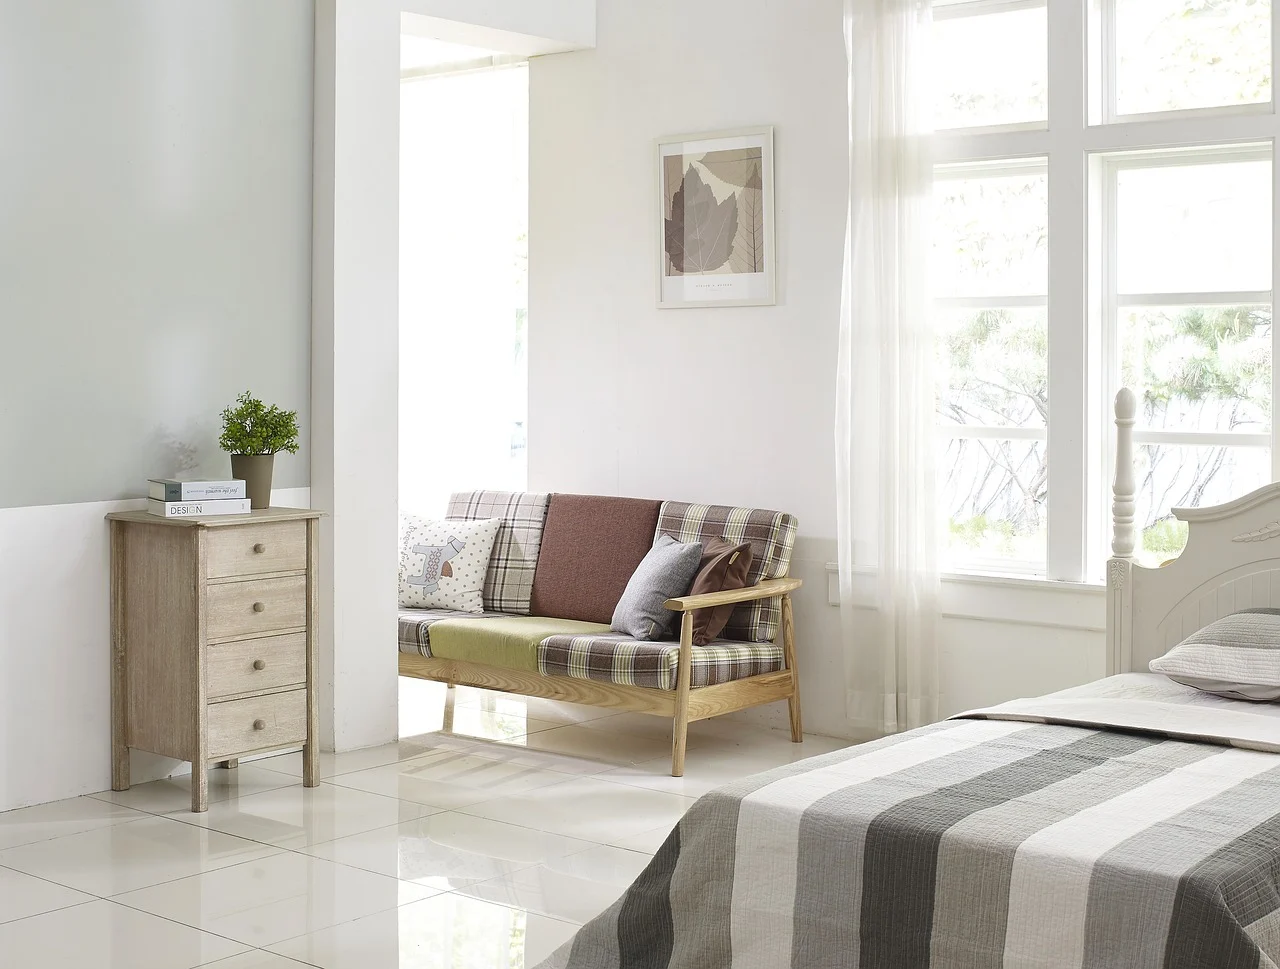 image - 4 Reasons Why Your Bedroom Should Be First to Renovate